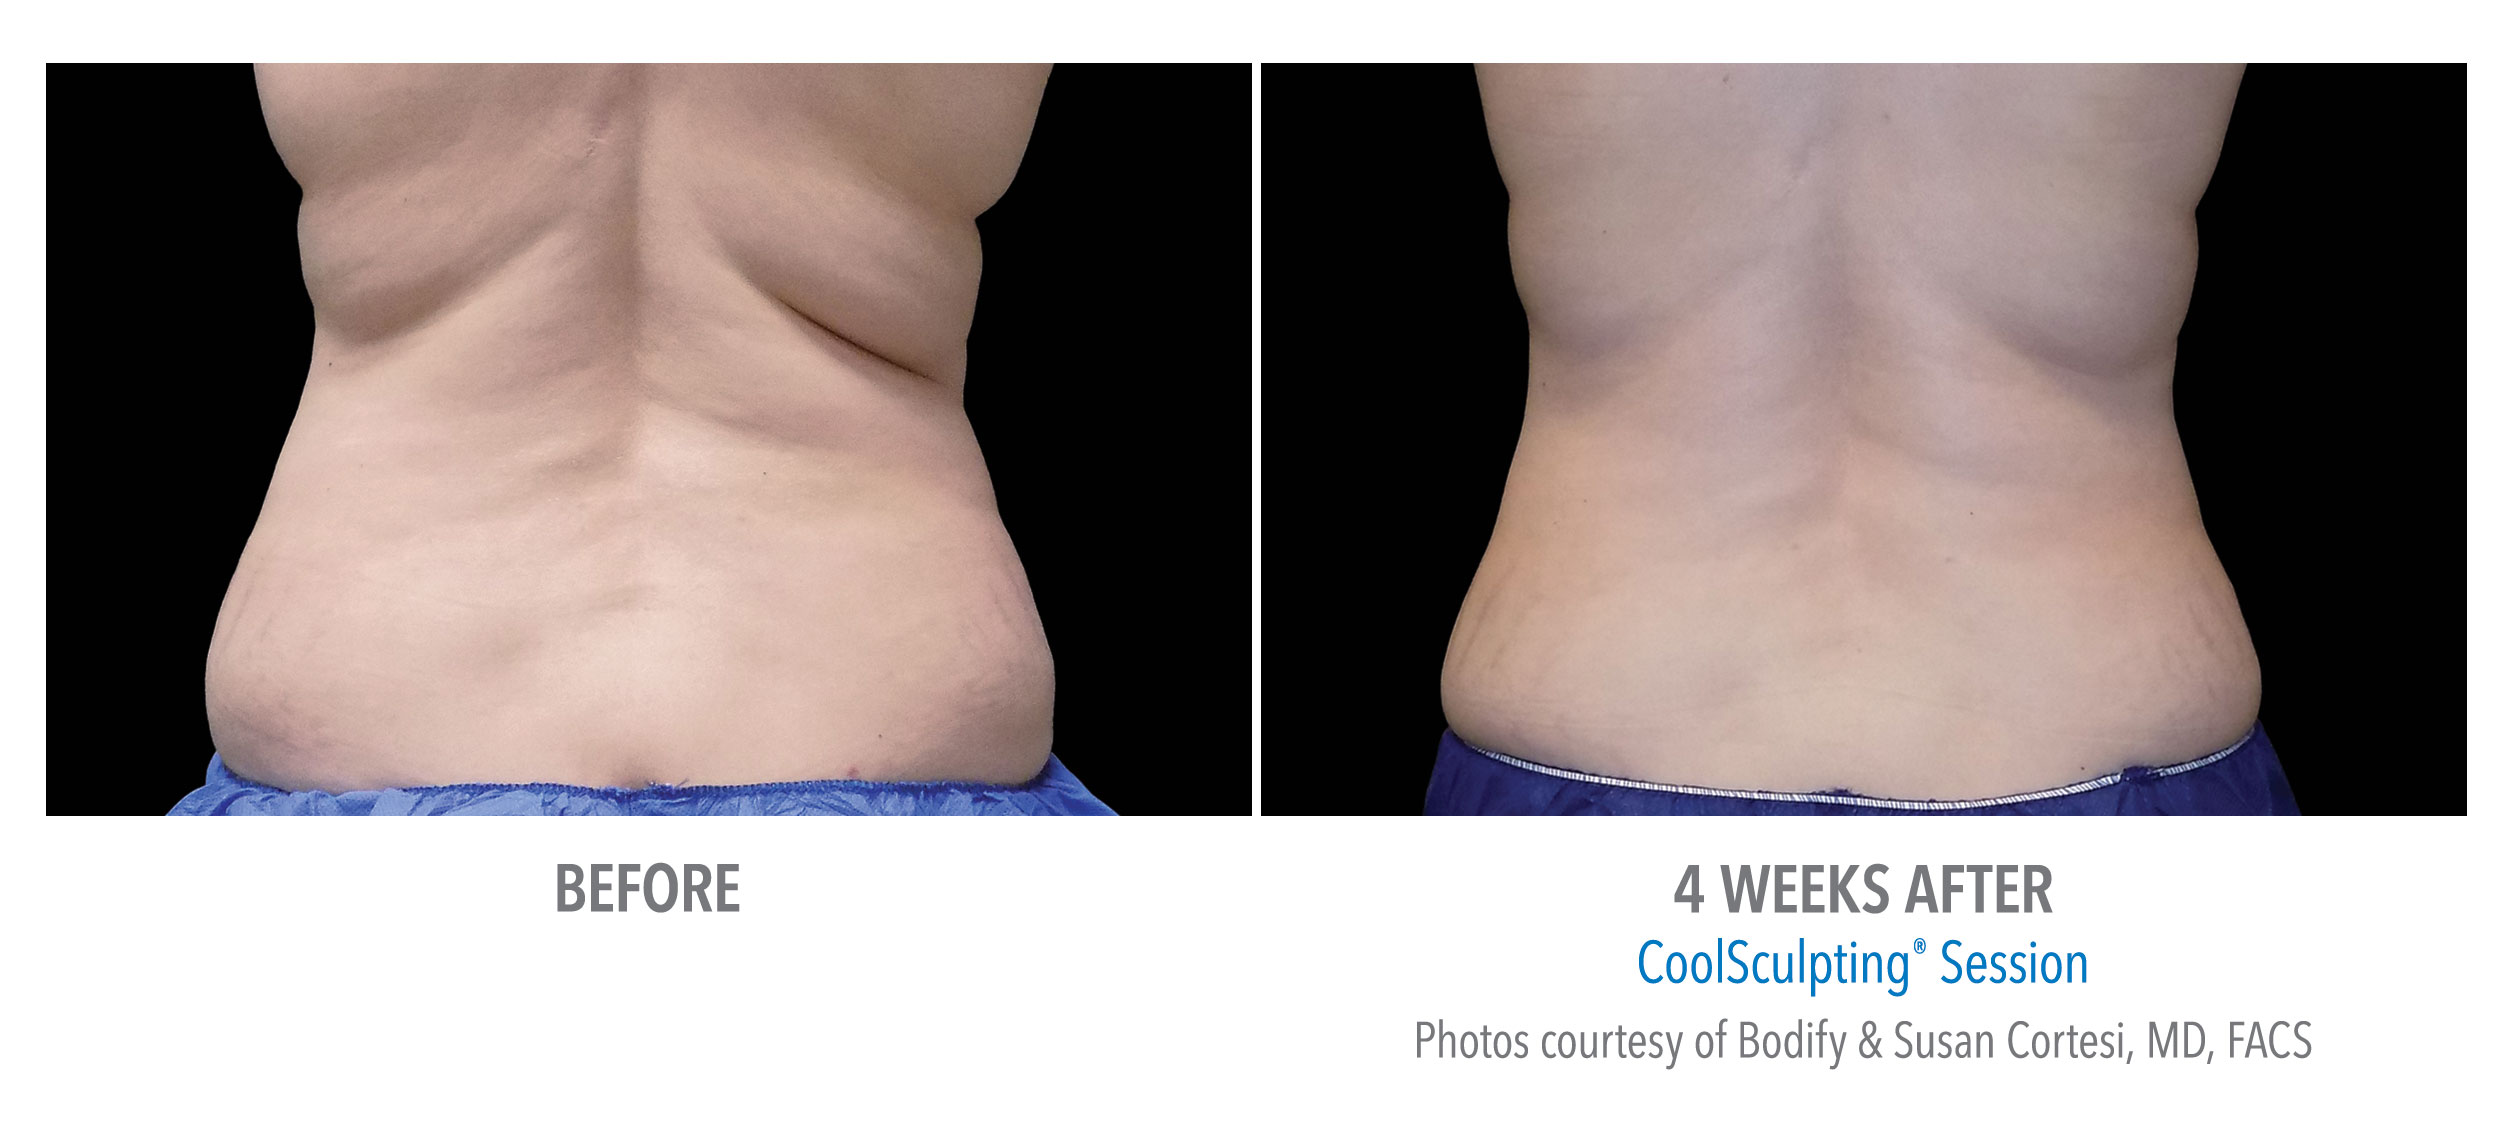 whittier-coolsculpting-back-flank-lower flank-coolsculpting2